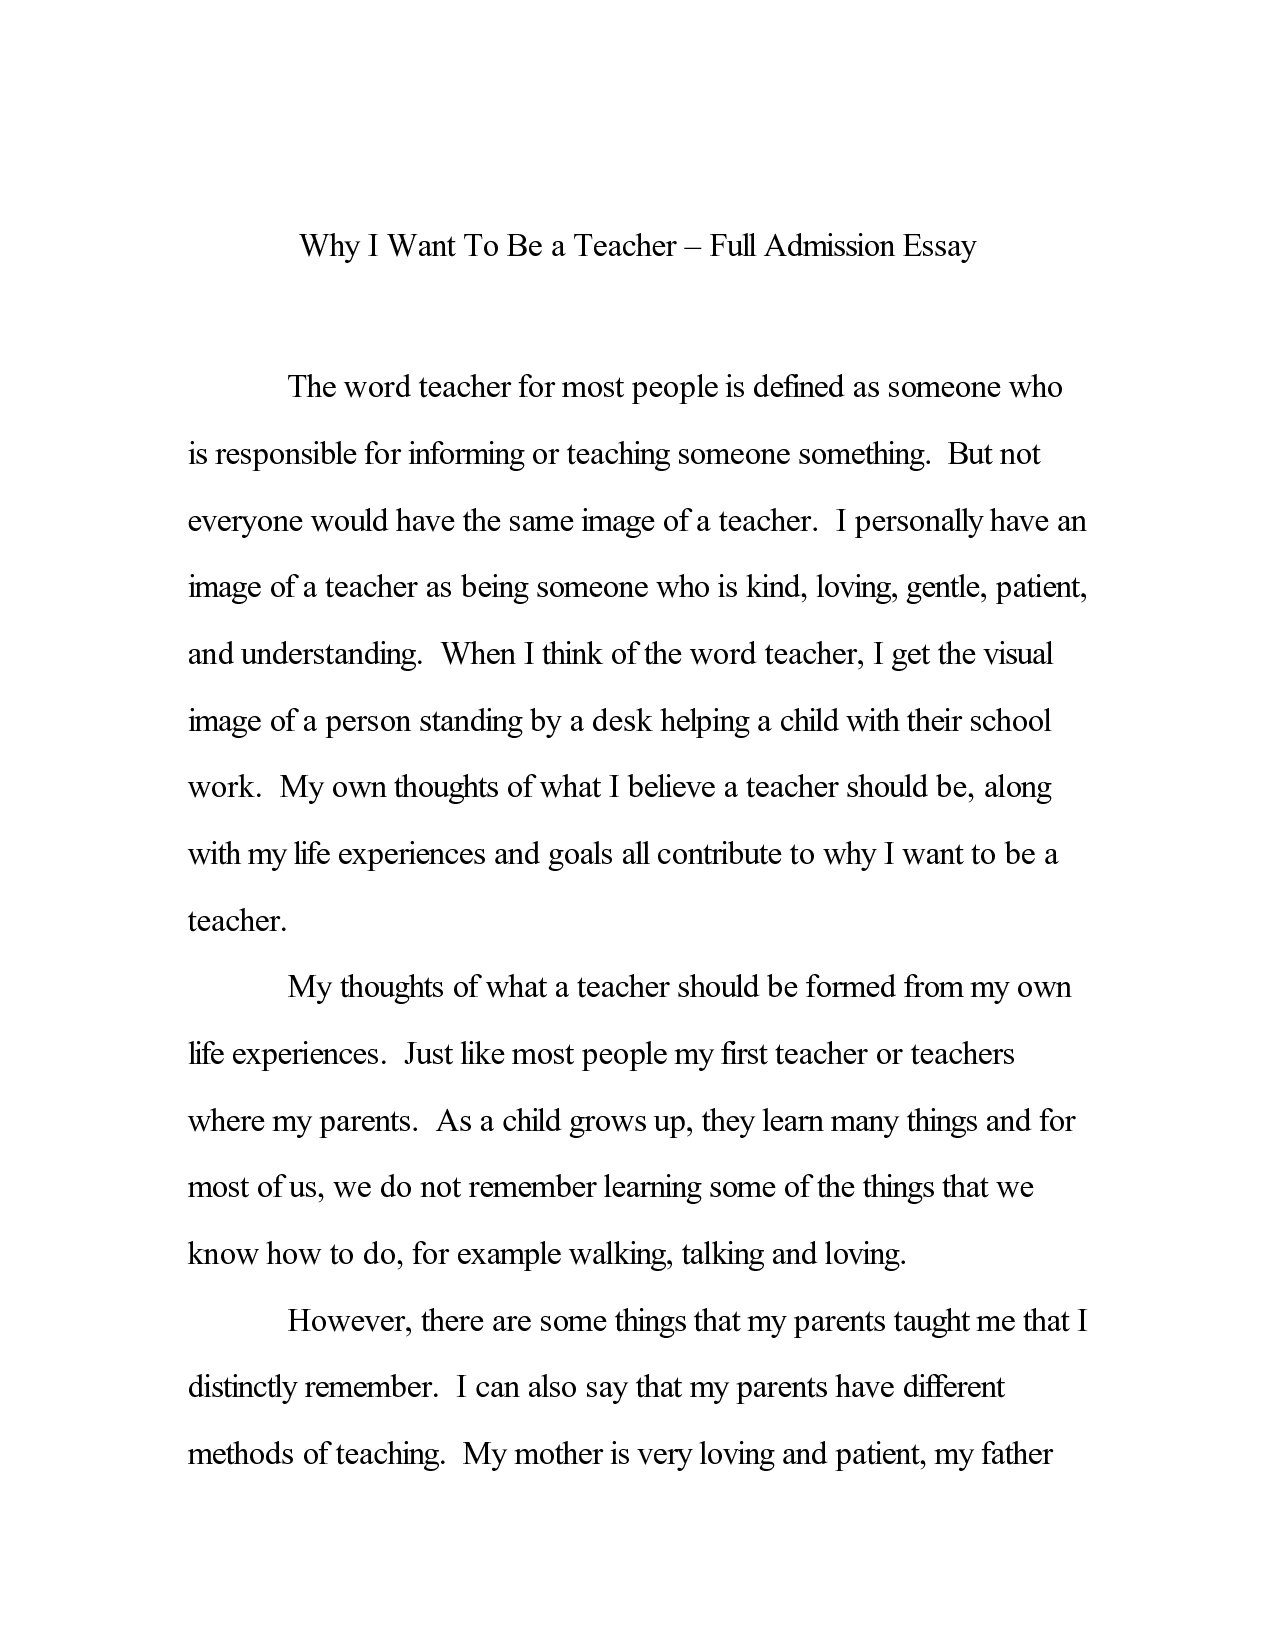 005 Essay Example Writing College Application Essays Marvelous Tips For Level Admission Sample Guide To Full